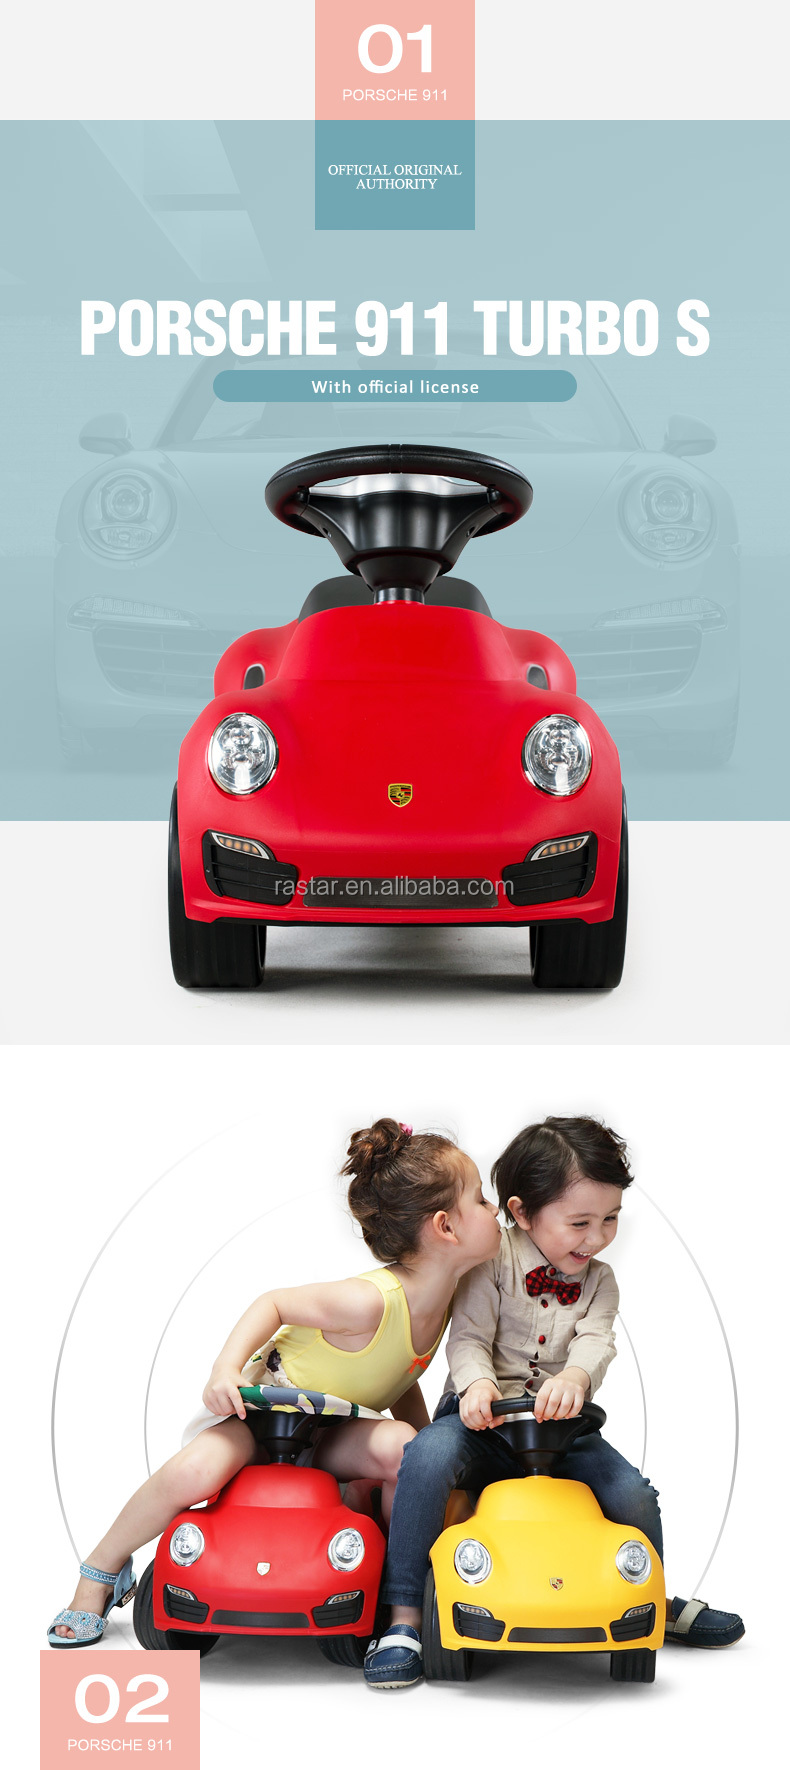 RASTAR mini baby car Porsche style foot pushing car toy ride on